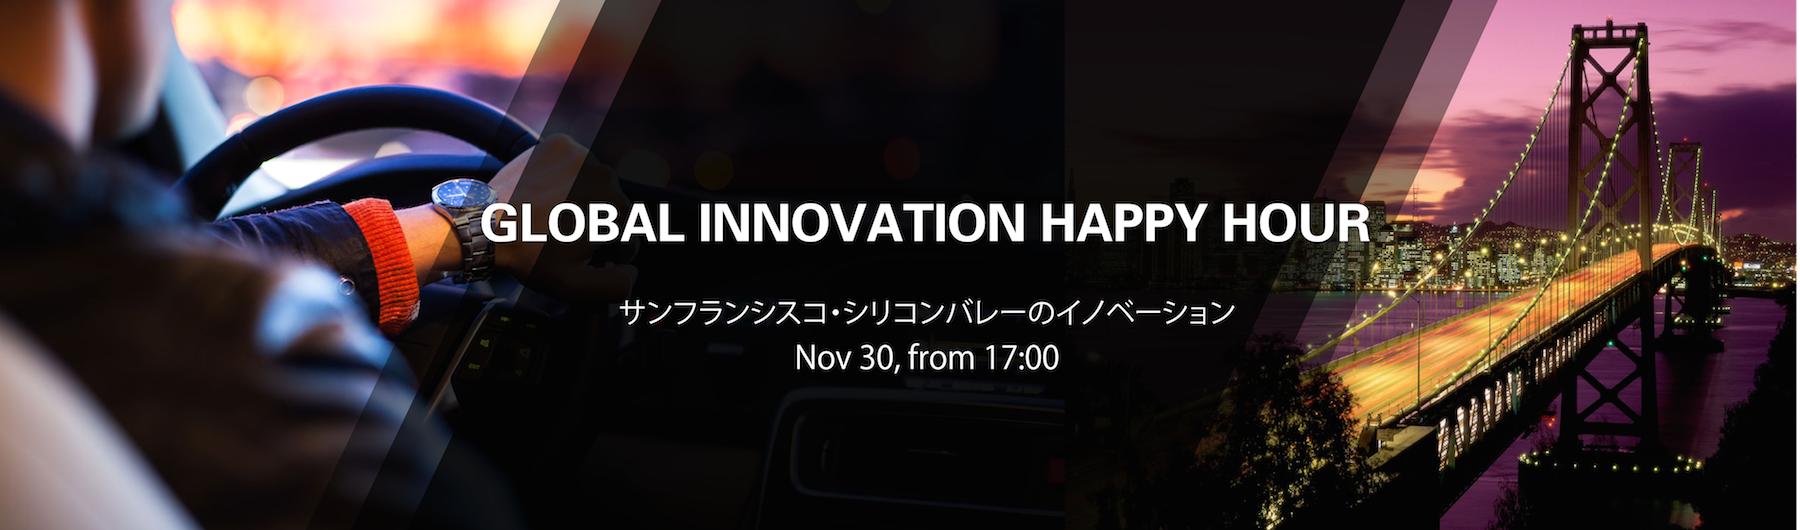 Global Innovation Happy Hour